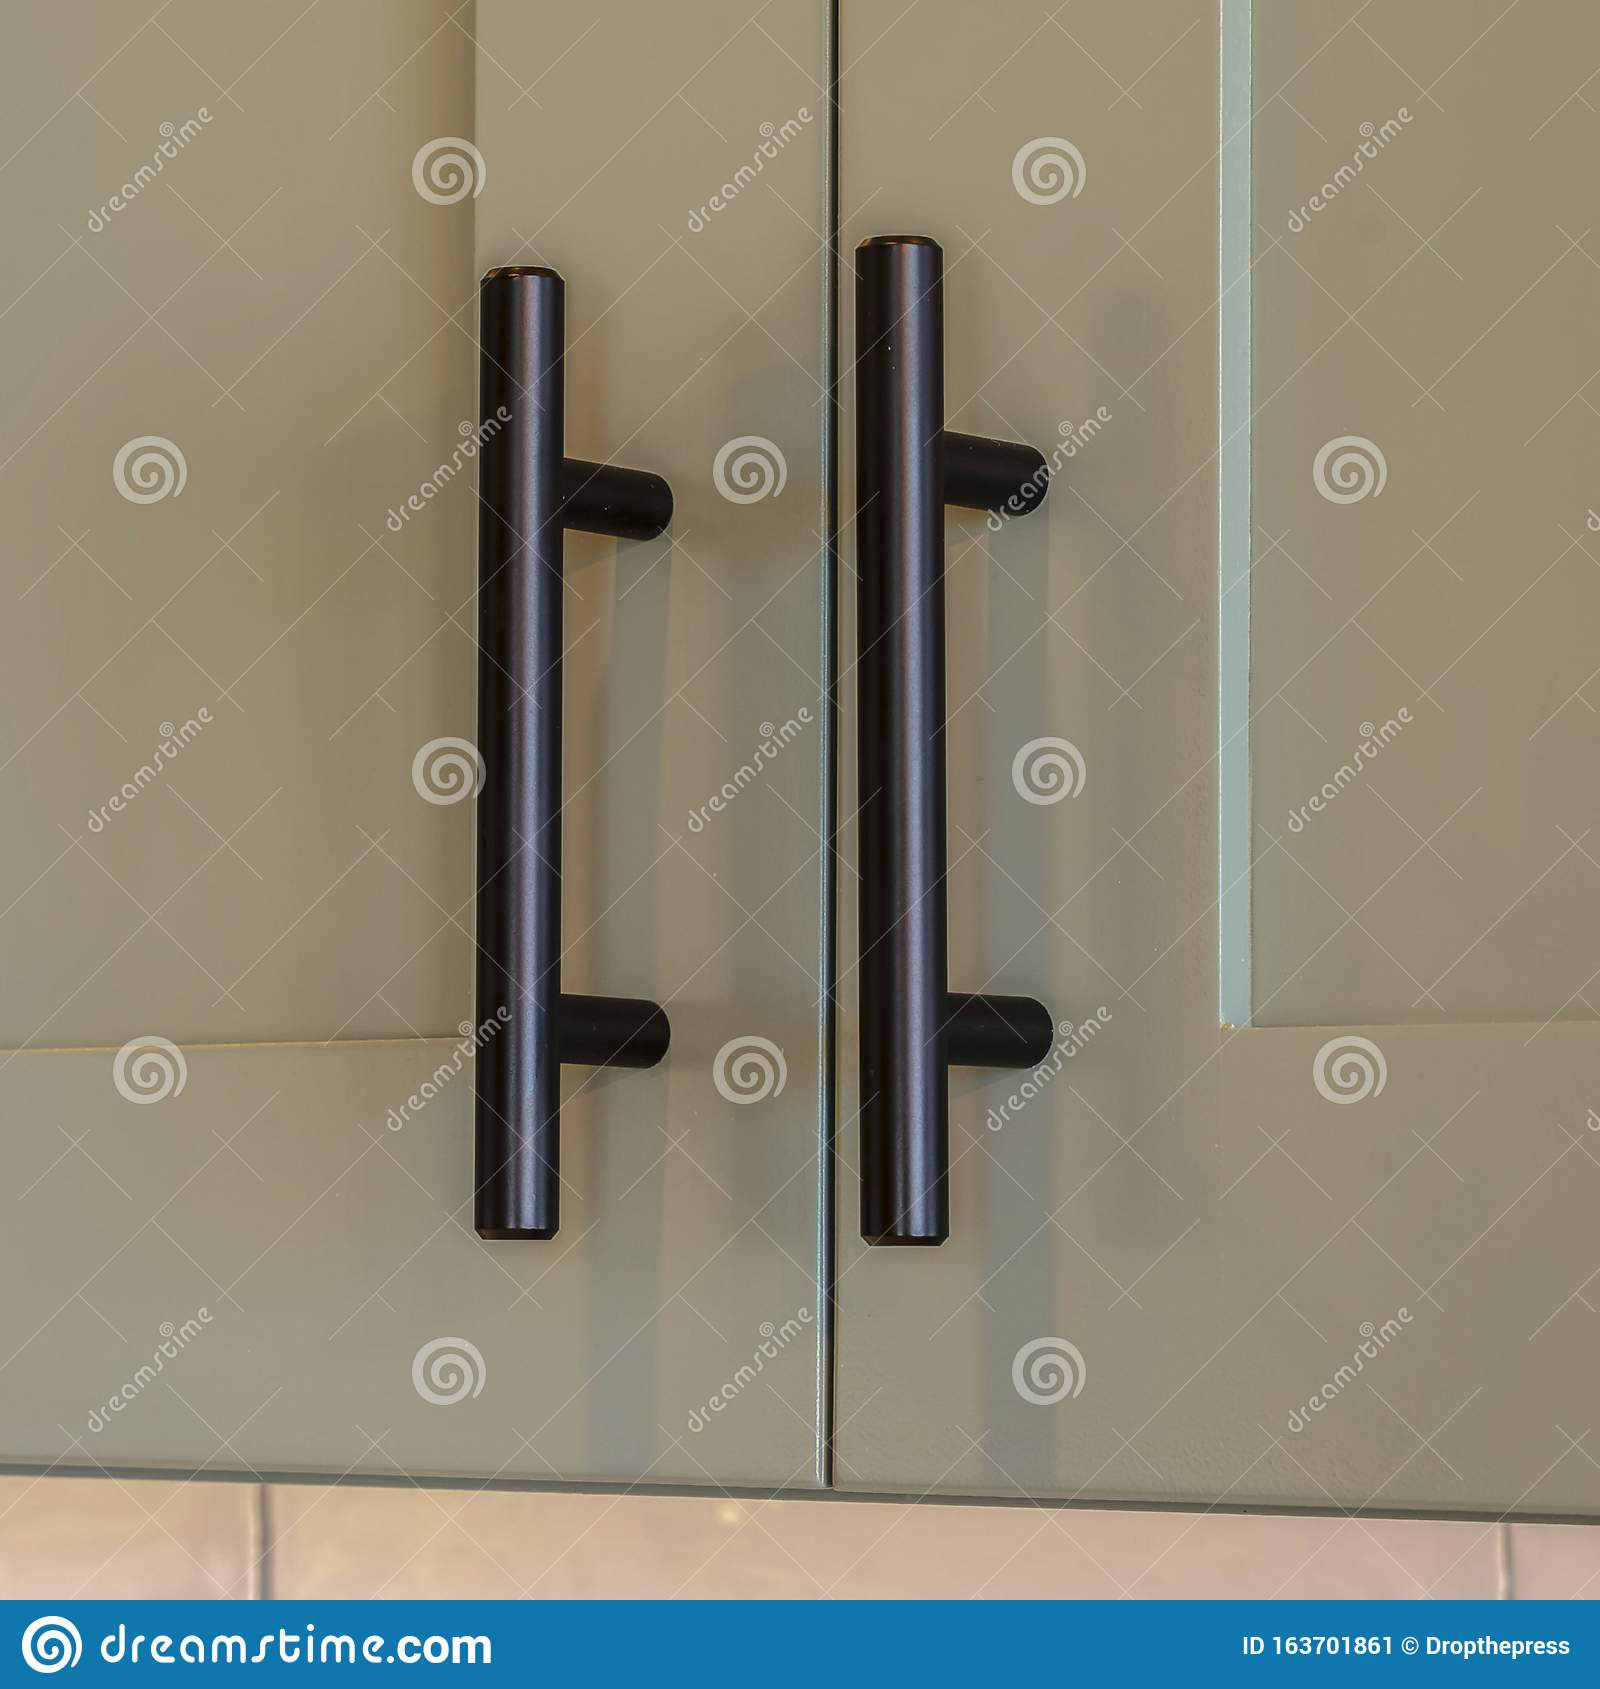 557 Kitchen Cupboard Handles Photos Free Royalty Free Stock Photos From Dreamstime